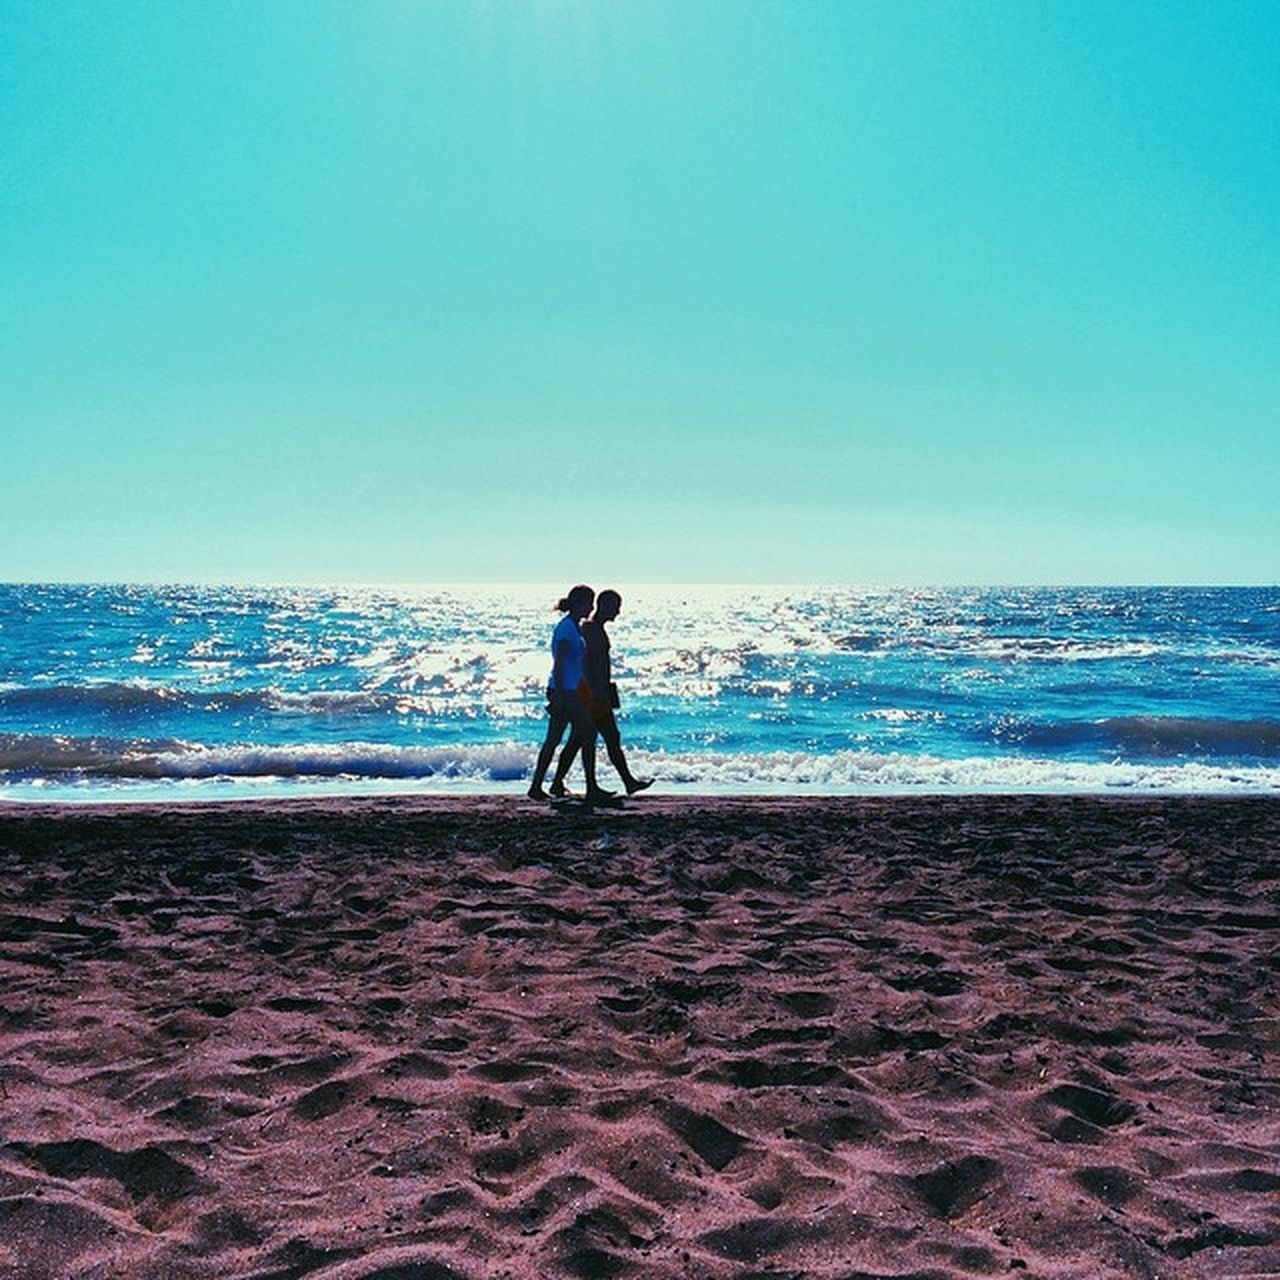 sea, beach, horizon over water, full length, nature, scenics, real people, water, beauty in nature, clear sky, walking, one person, men, sky, tranquil scene, sand, day, tranquility, outdoors, wave, people